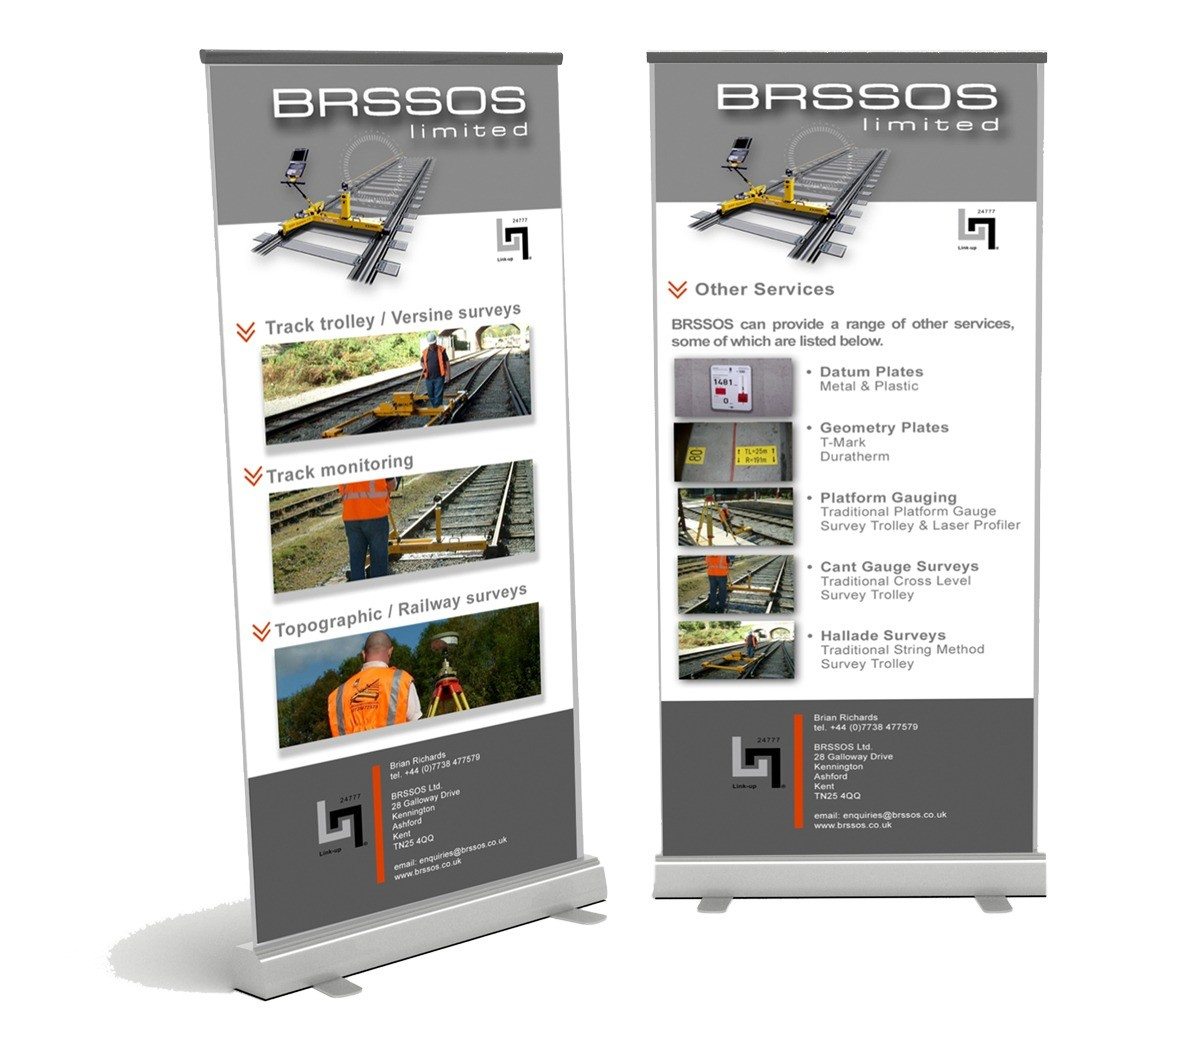 An image showing the exhibition pull up banners designed for BROSSOS.